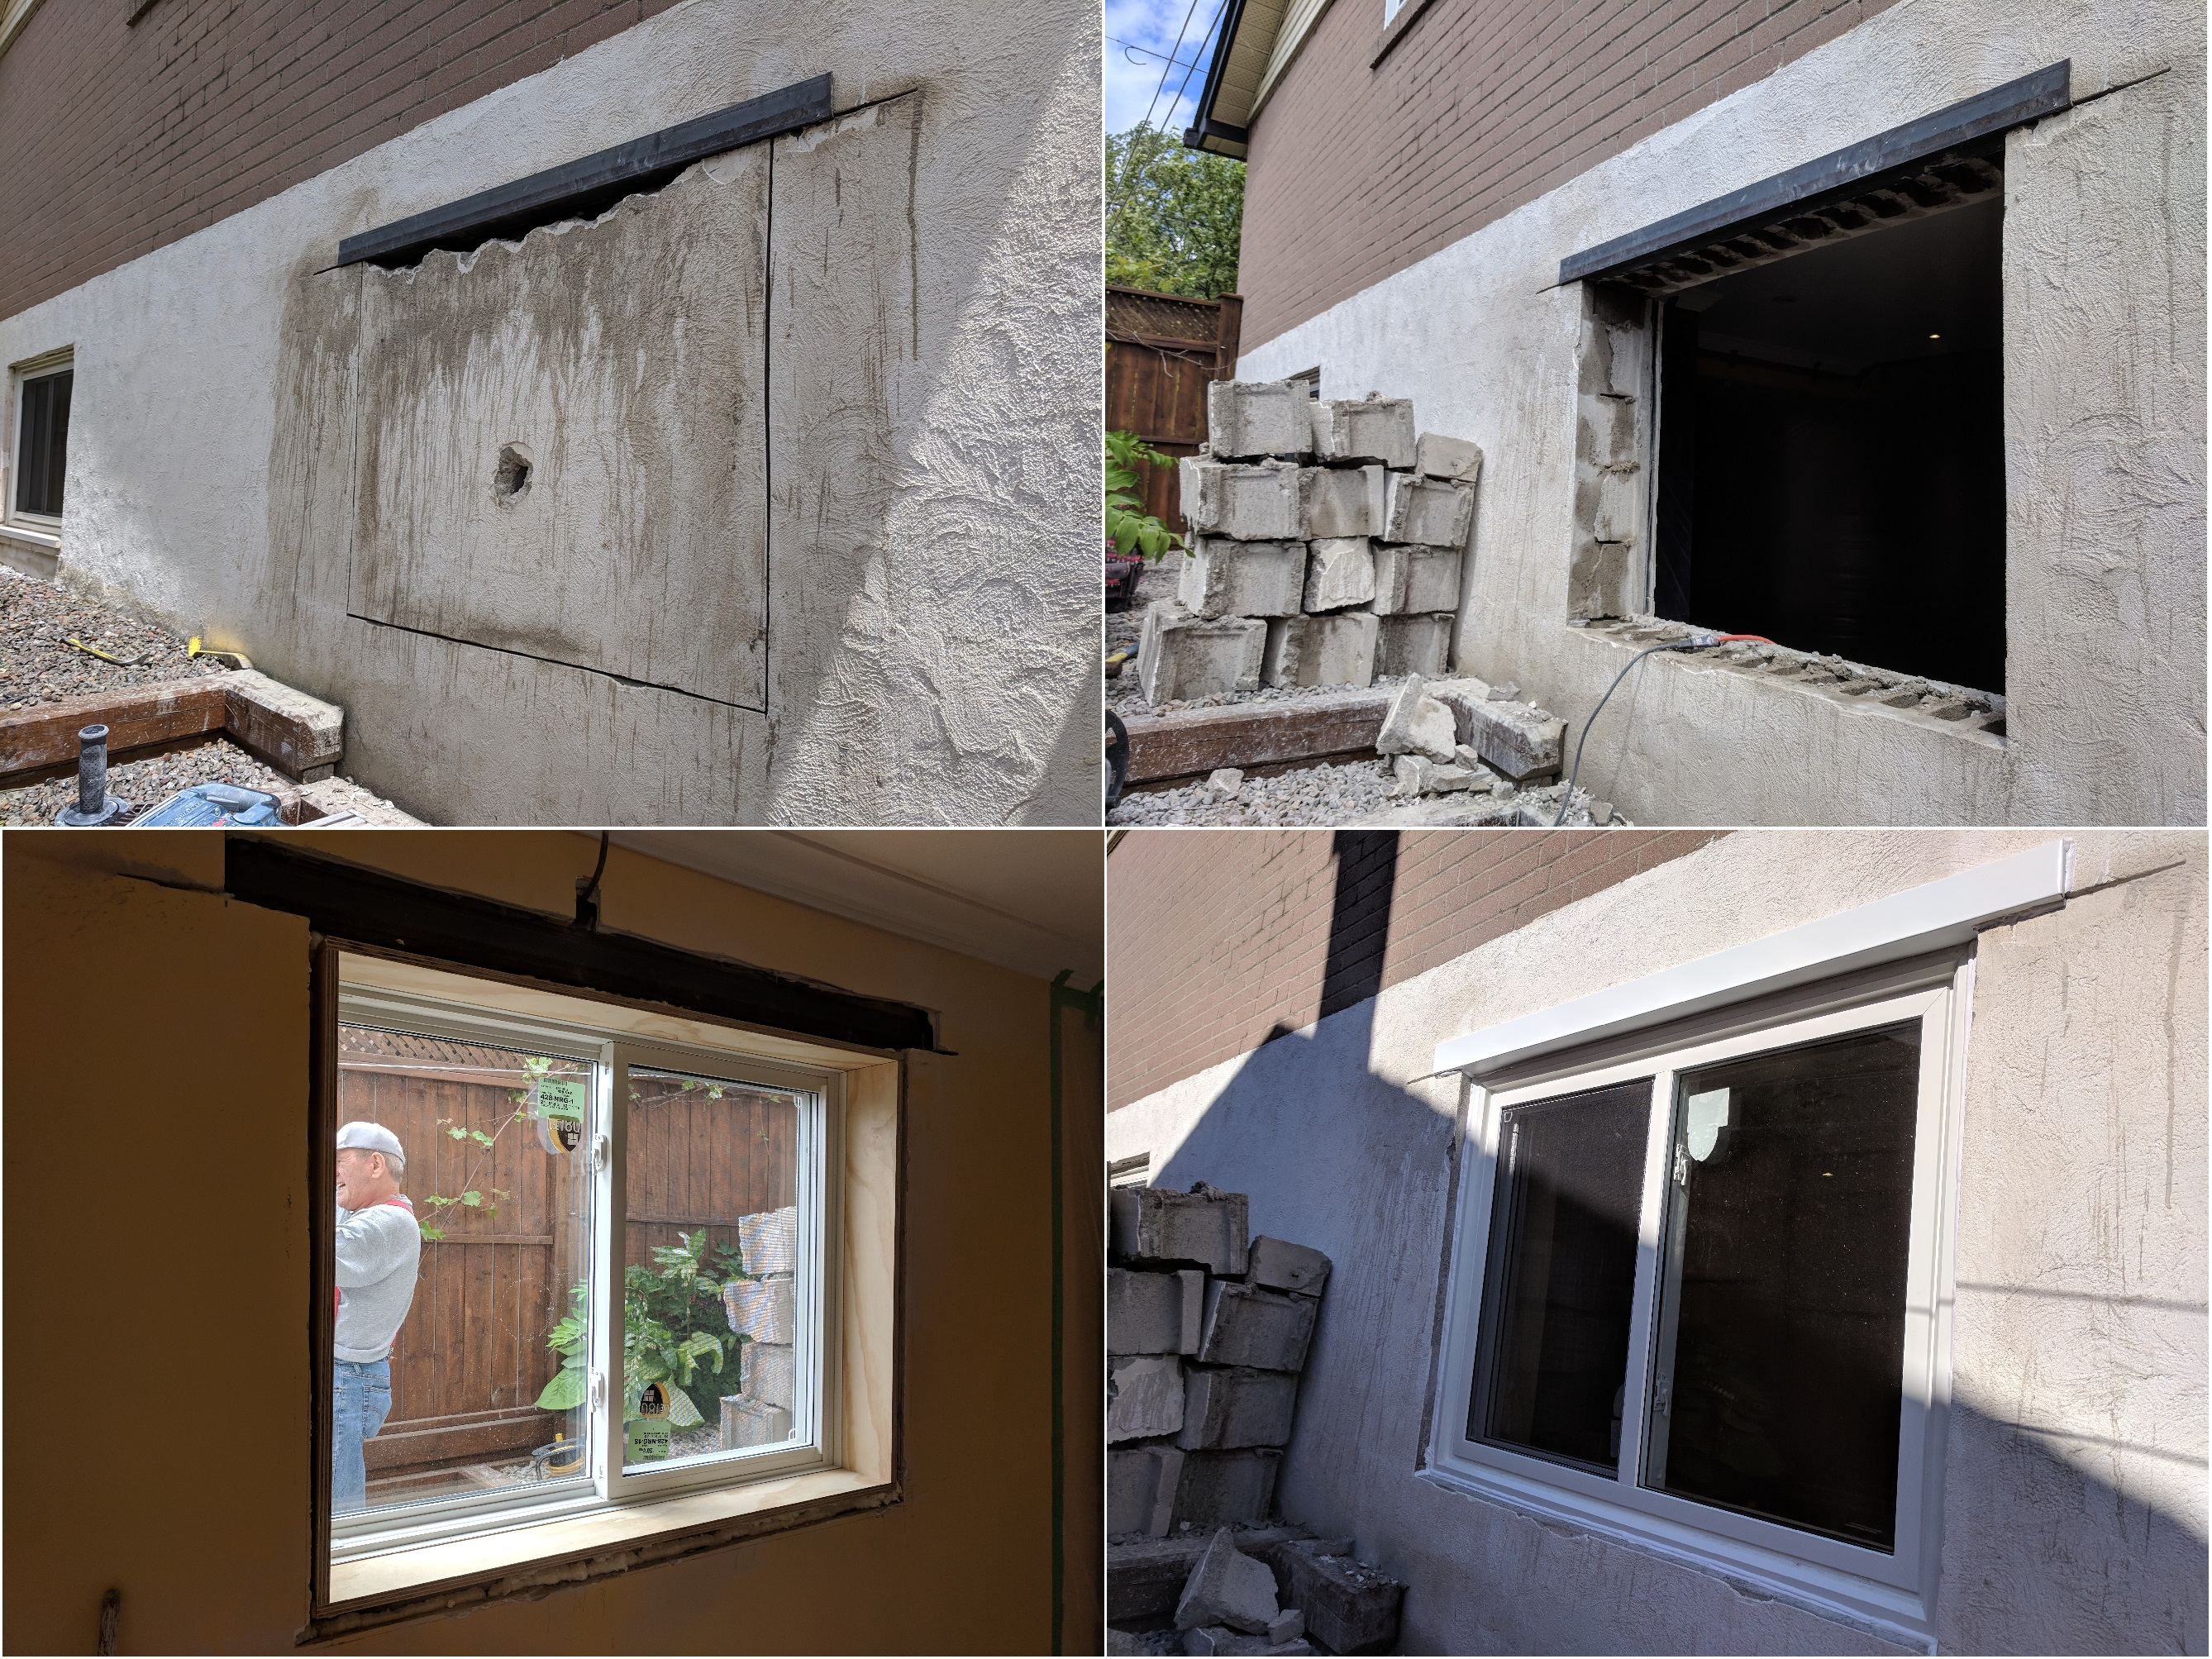 Basement egress window. Cutting a new window opening. Cement concrete foundation blocks cutting. Foundation cutting. Double lintel installation (inside lintel and outside lintel). Double sliding window installation.  Aluminum capping flashing.